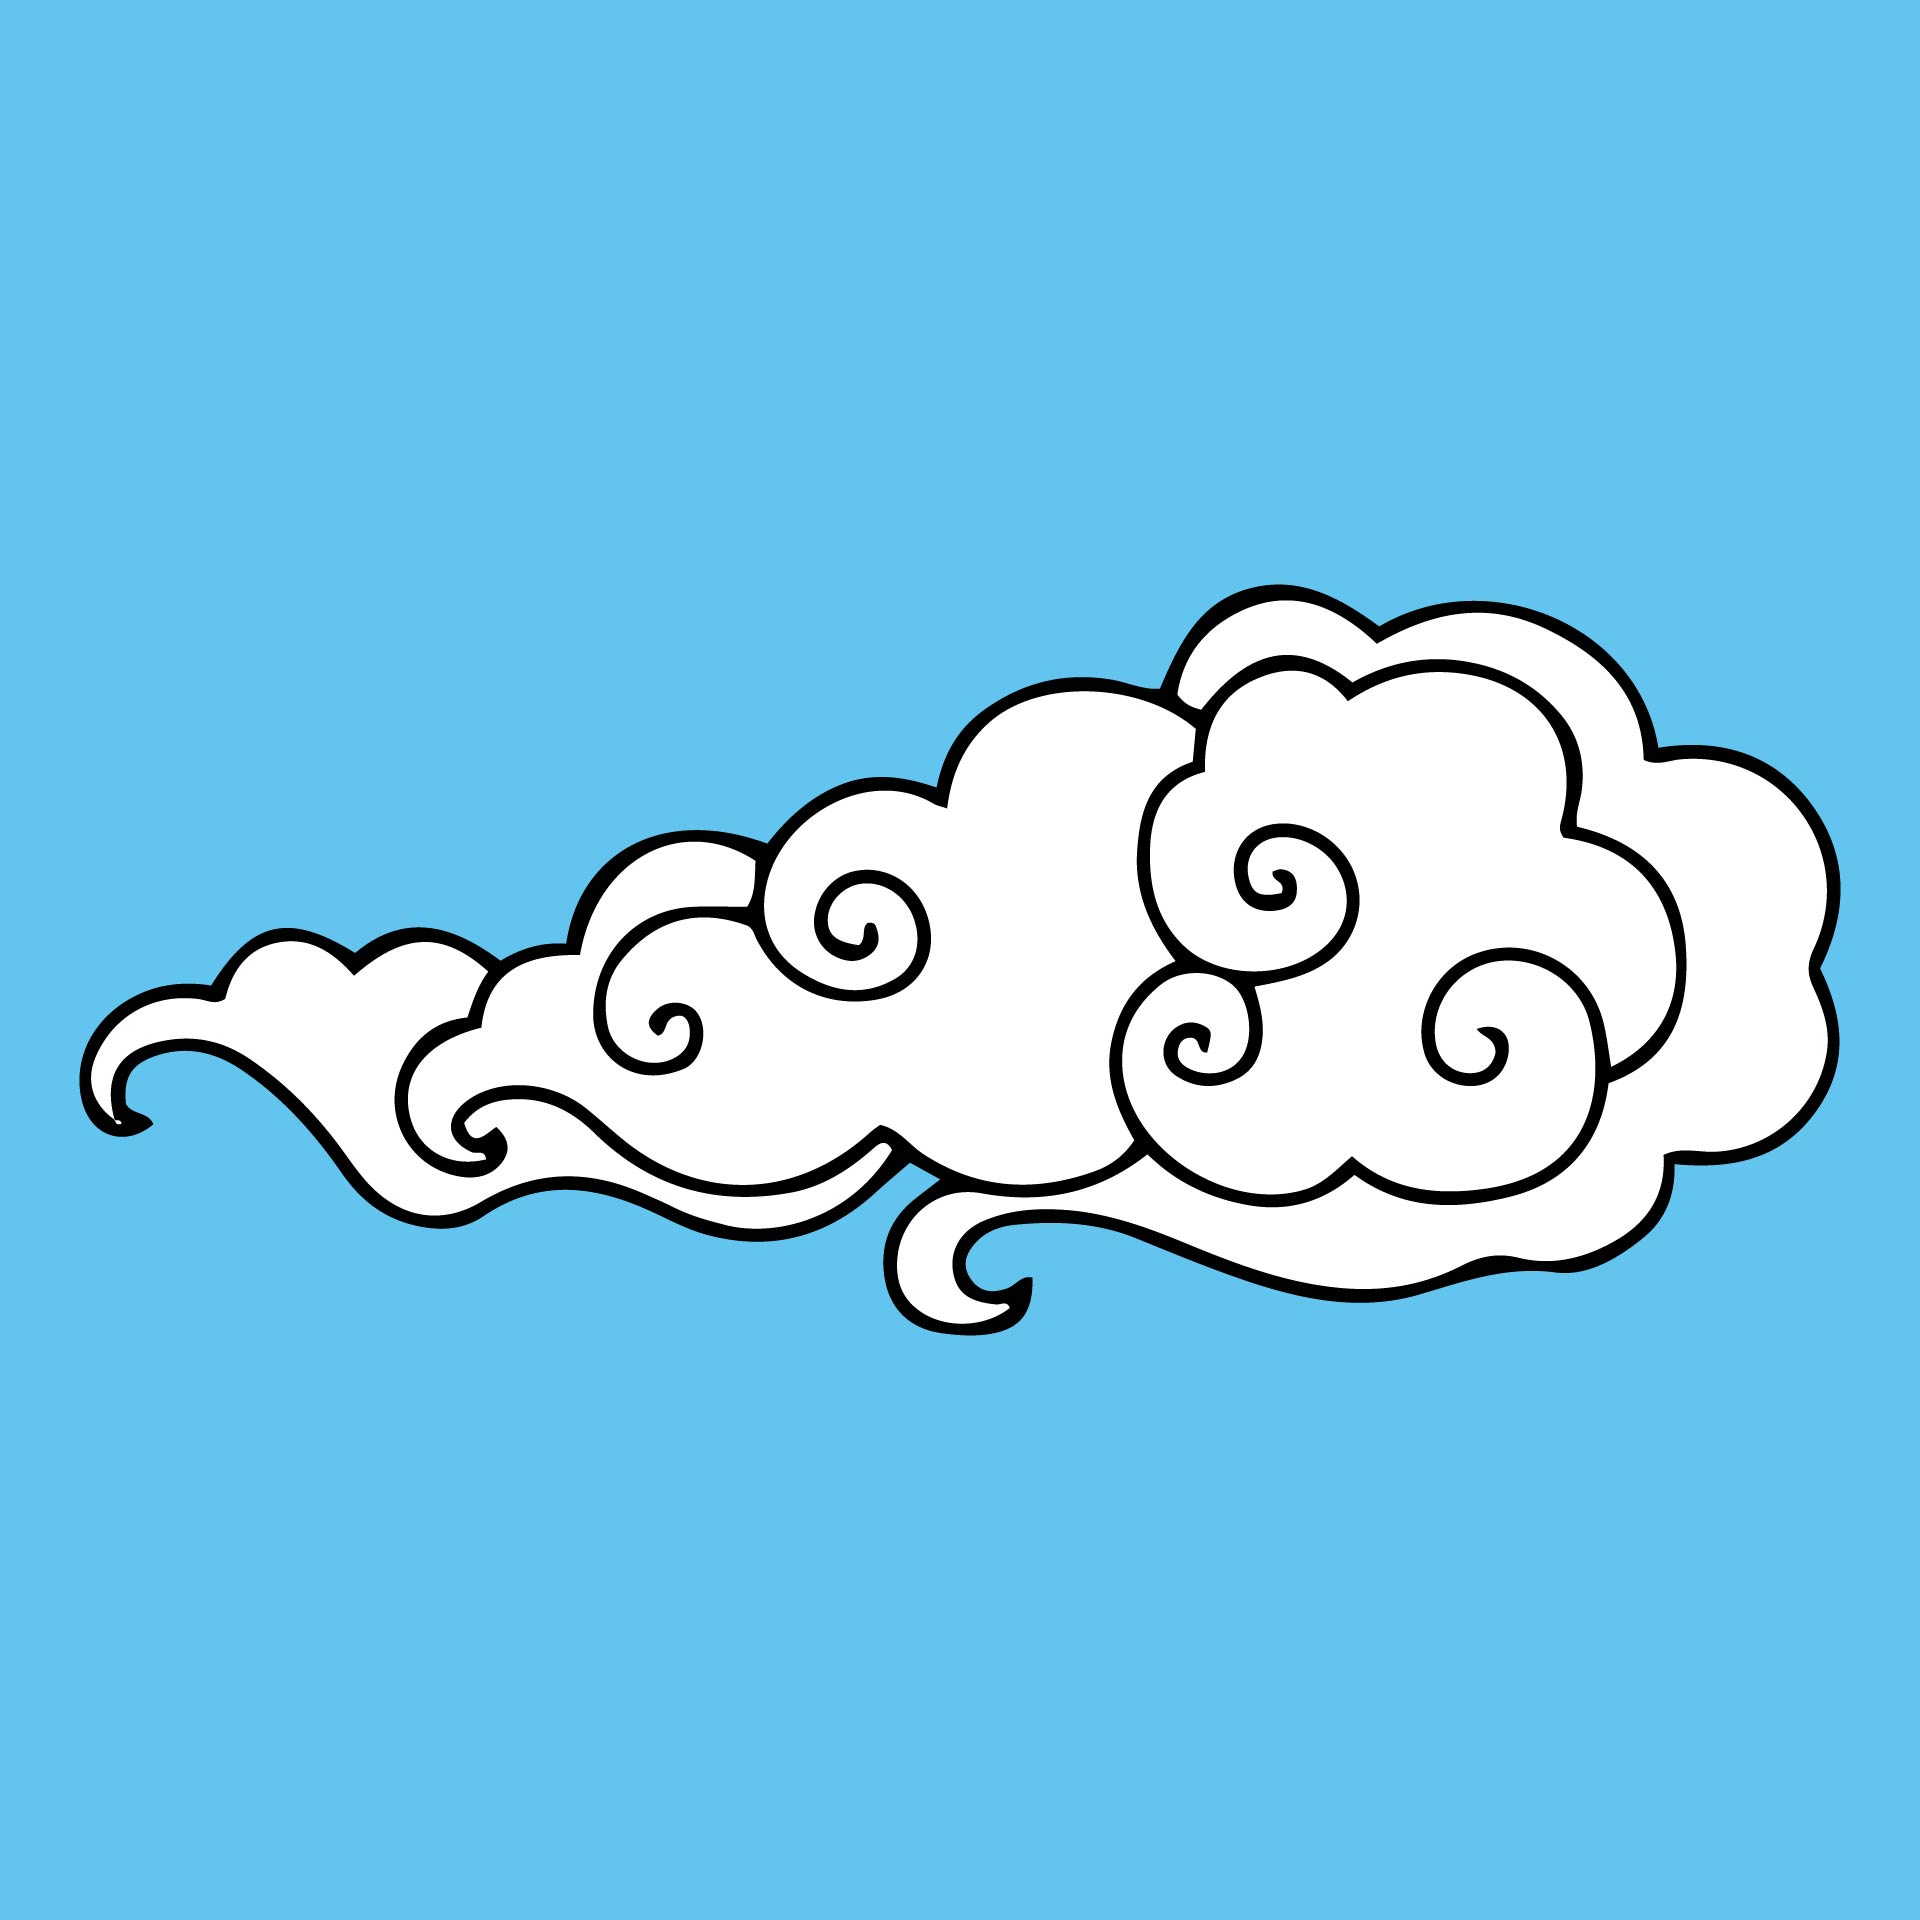 Cut Out Printable Cloud Template